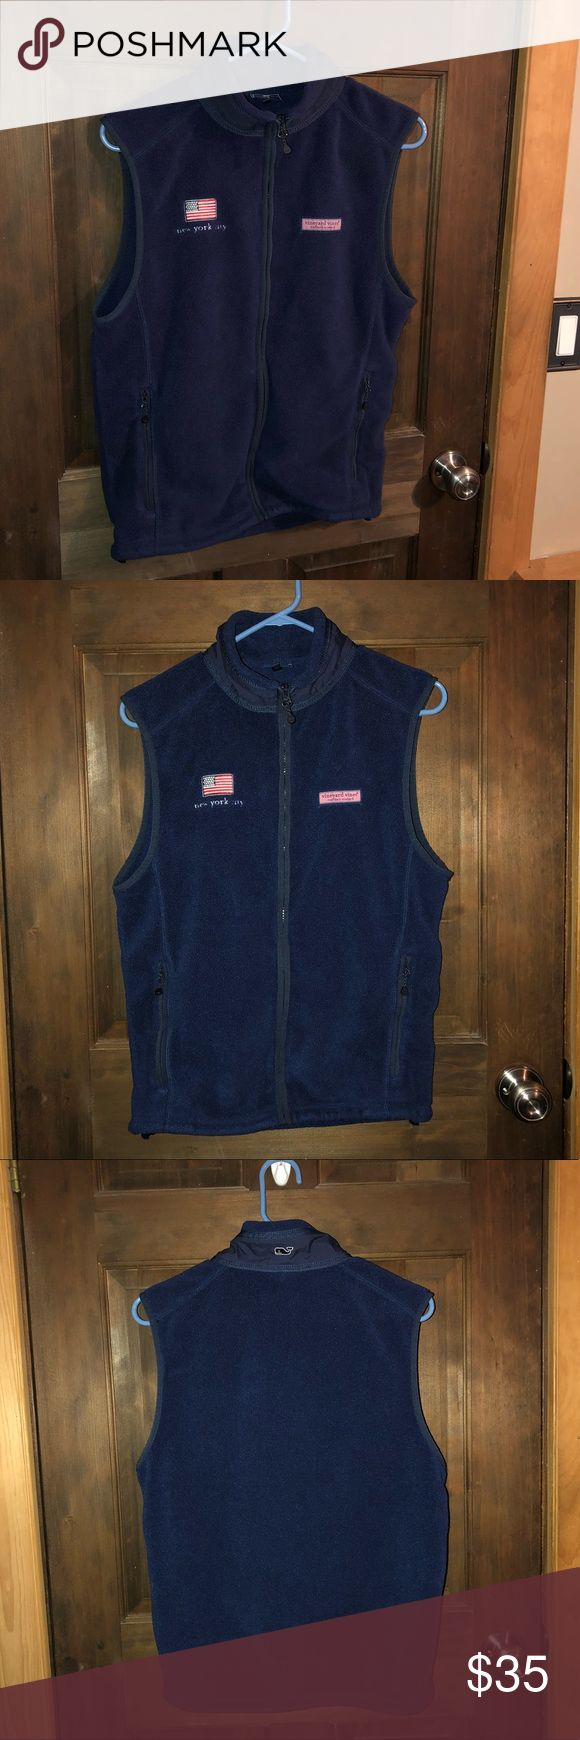 SALE💙Vineyard Vines   New York City Harbor Vest * Brand: Vineyard Vines * Size: Men's XS Women's S-M * Color: Navy Blue with American Flag and Pink logo * Description: perfect condition! Very comfortable material with lots of life left. Has a New York City label on the left side.  * Reason for sale: I have a Patagonia vest so I don't need this!  * Will except most reasonable offers! * I ship in 1-2 business days!  * * I will disclose any/all flaws. * * Smoke free home! * Ask any questions…